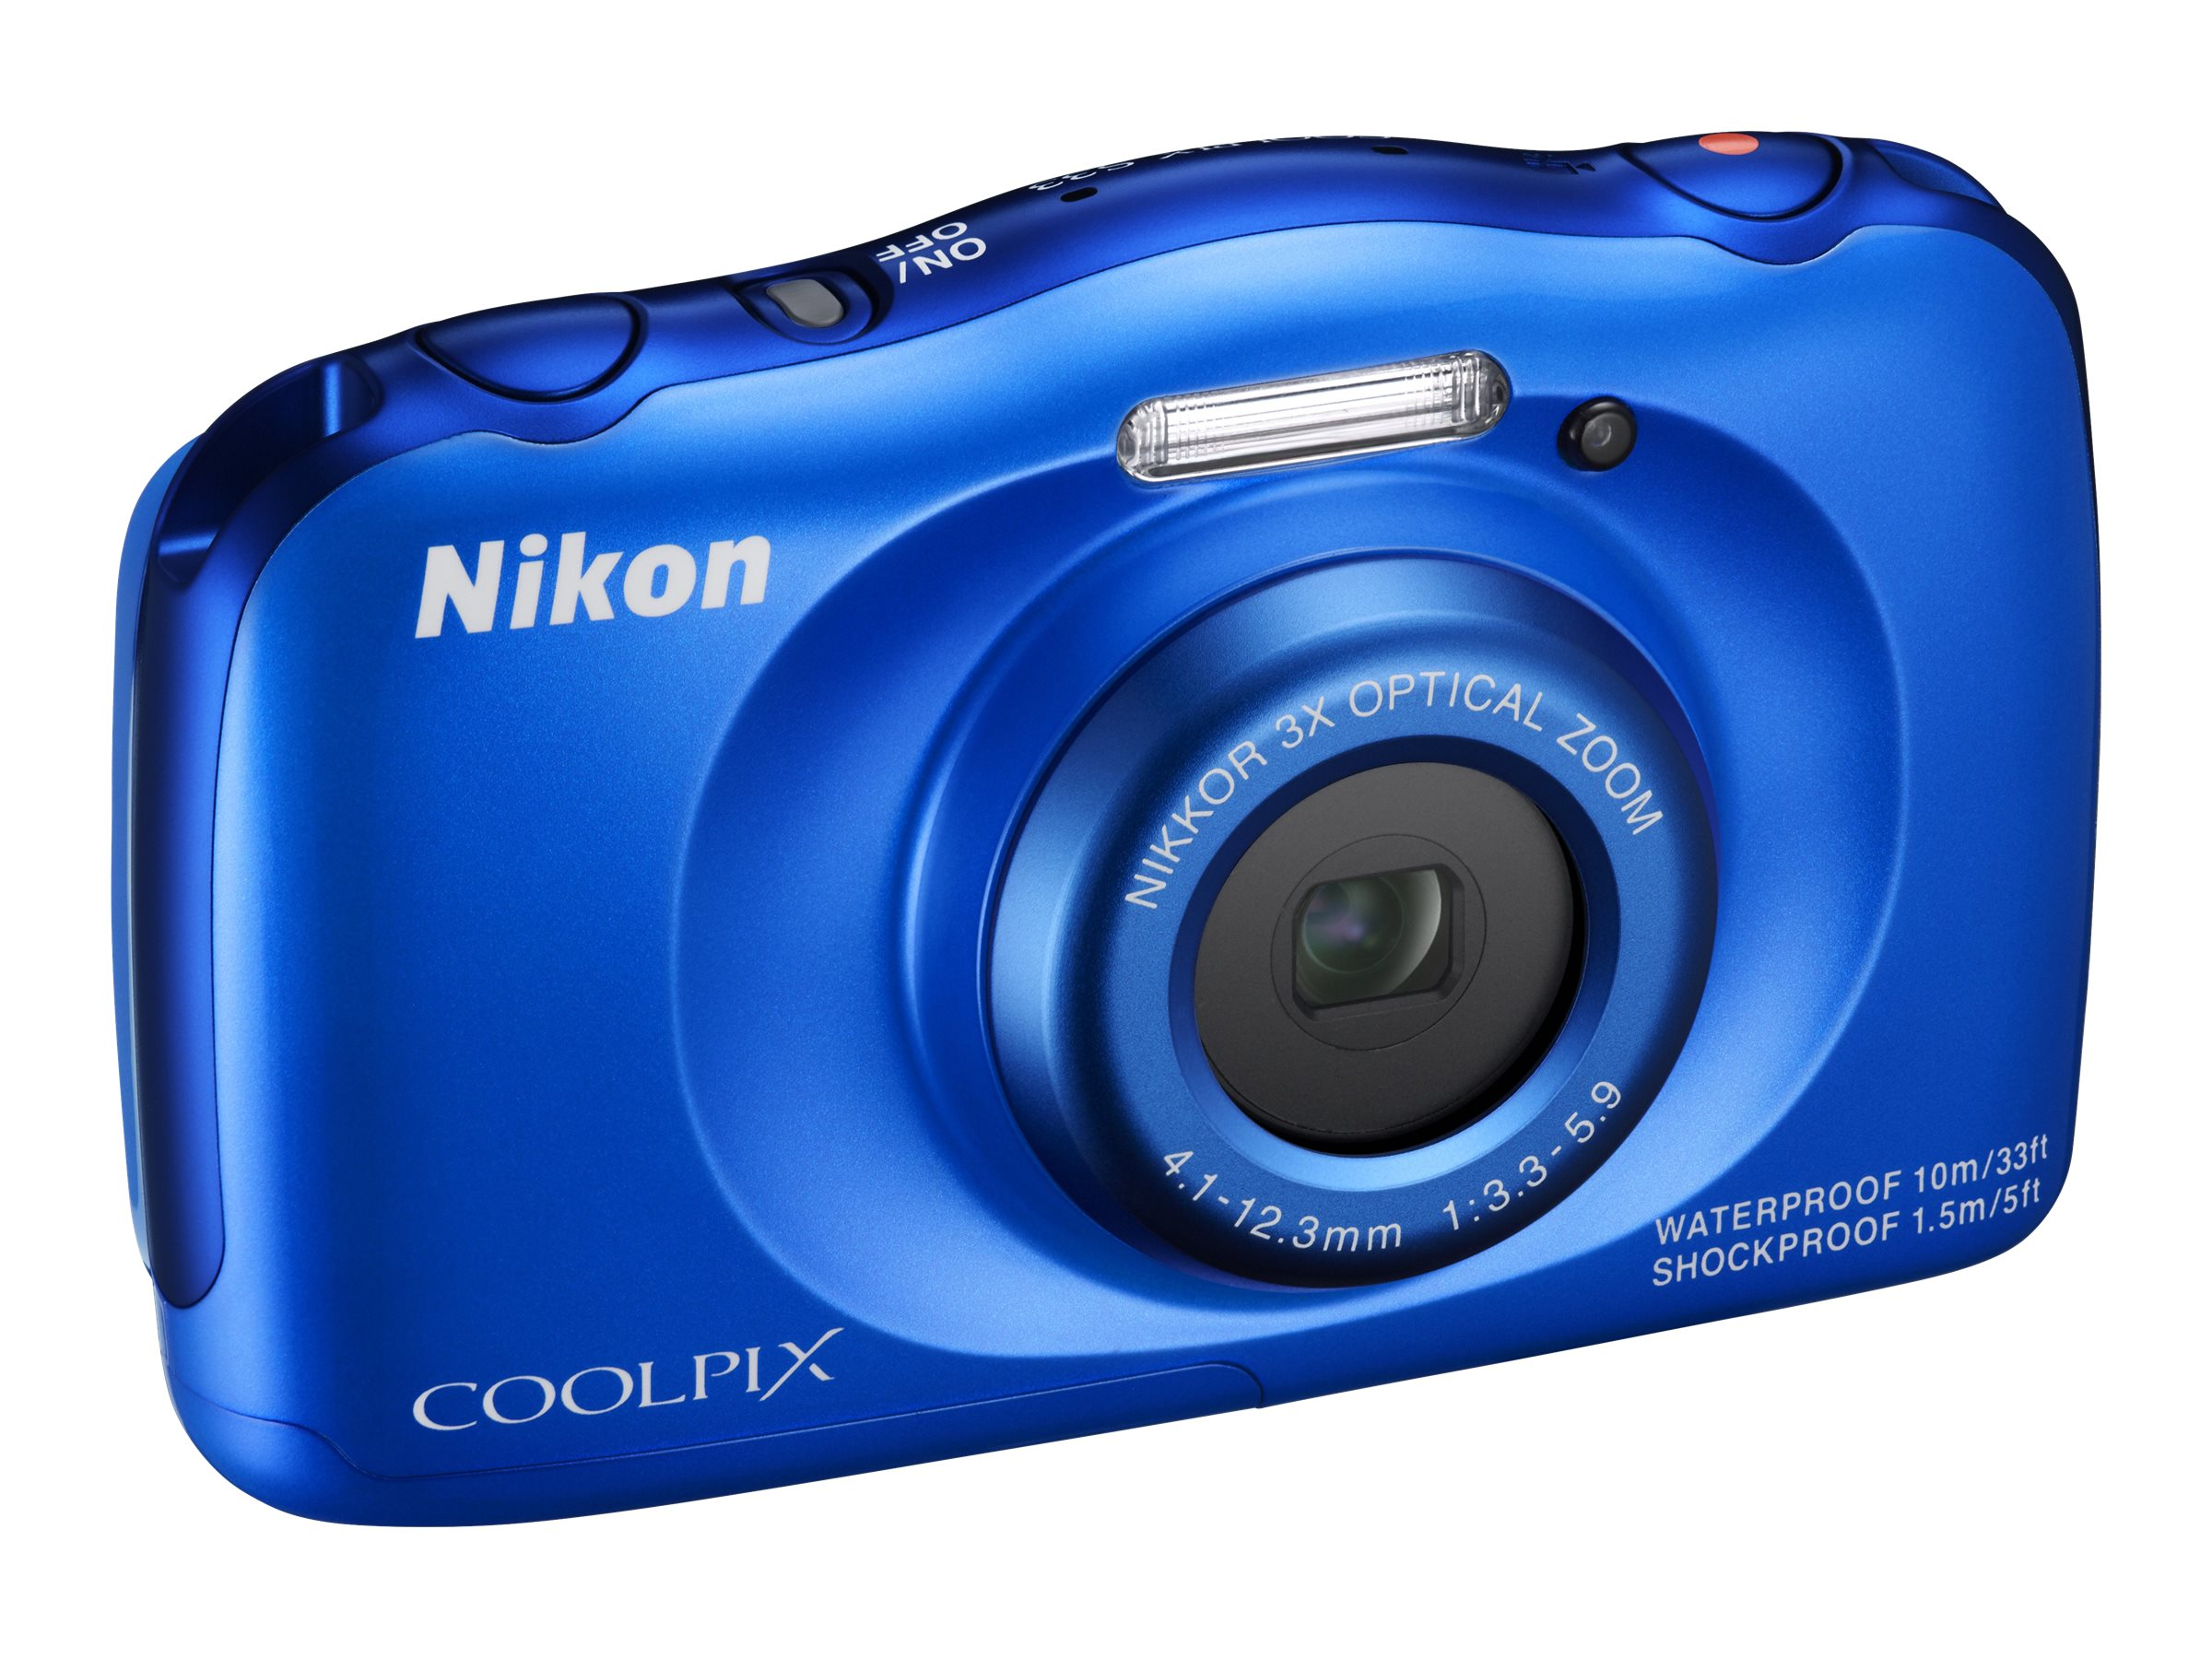 Nikon COOLPIX S33 Digital Camera, Blue, 26496